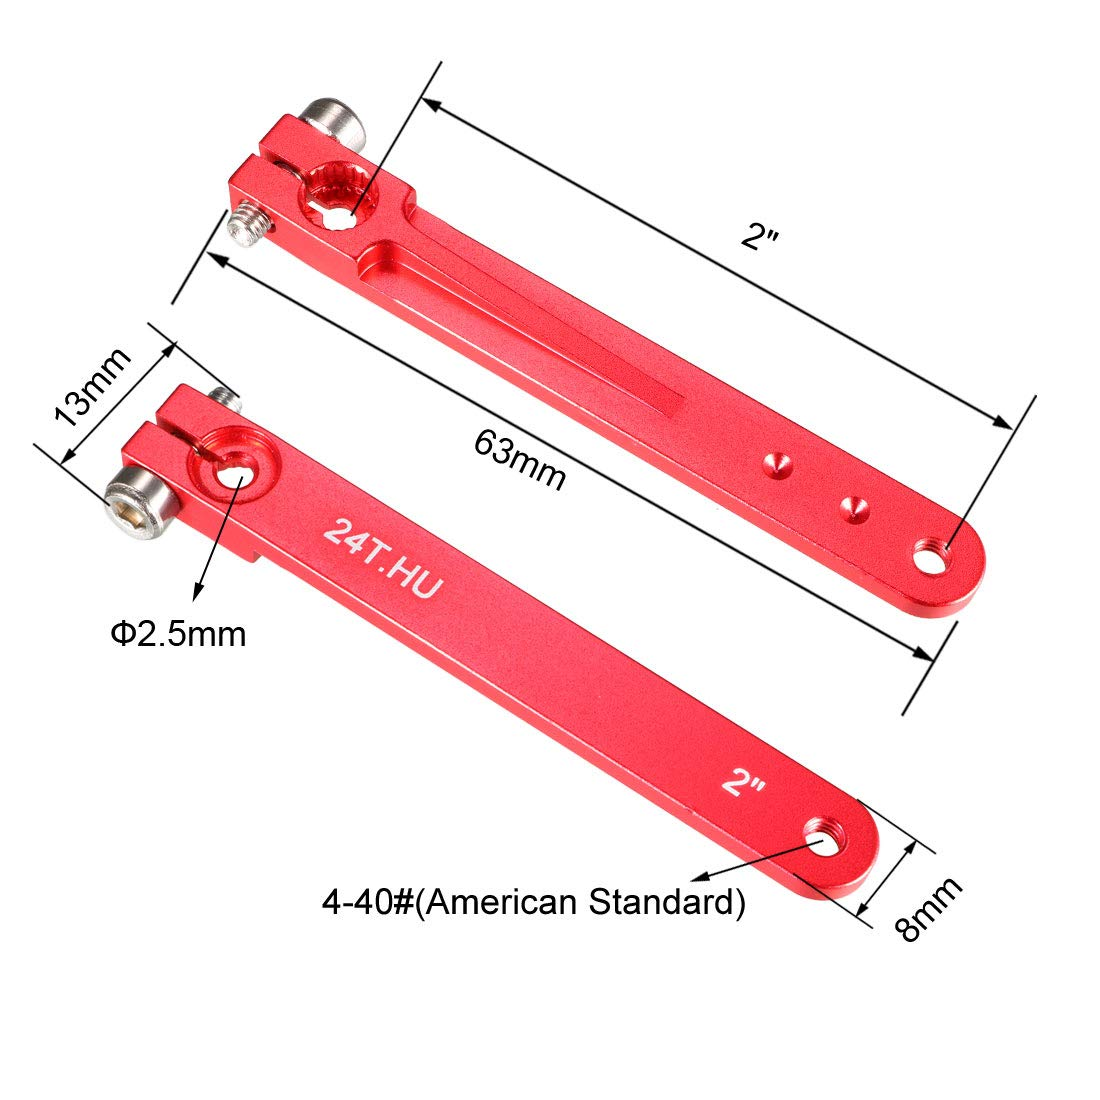 uxcell Aluminum Servo Arms Single Arm 25T 4-40# Thread Red for 2 Inch Futaba